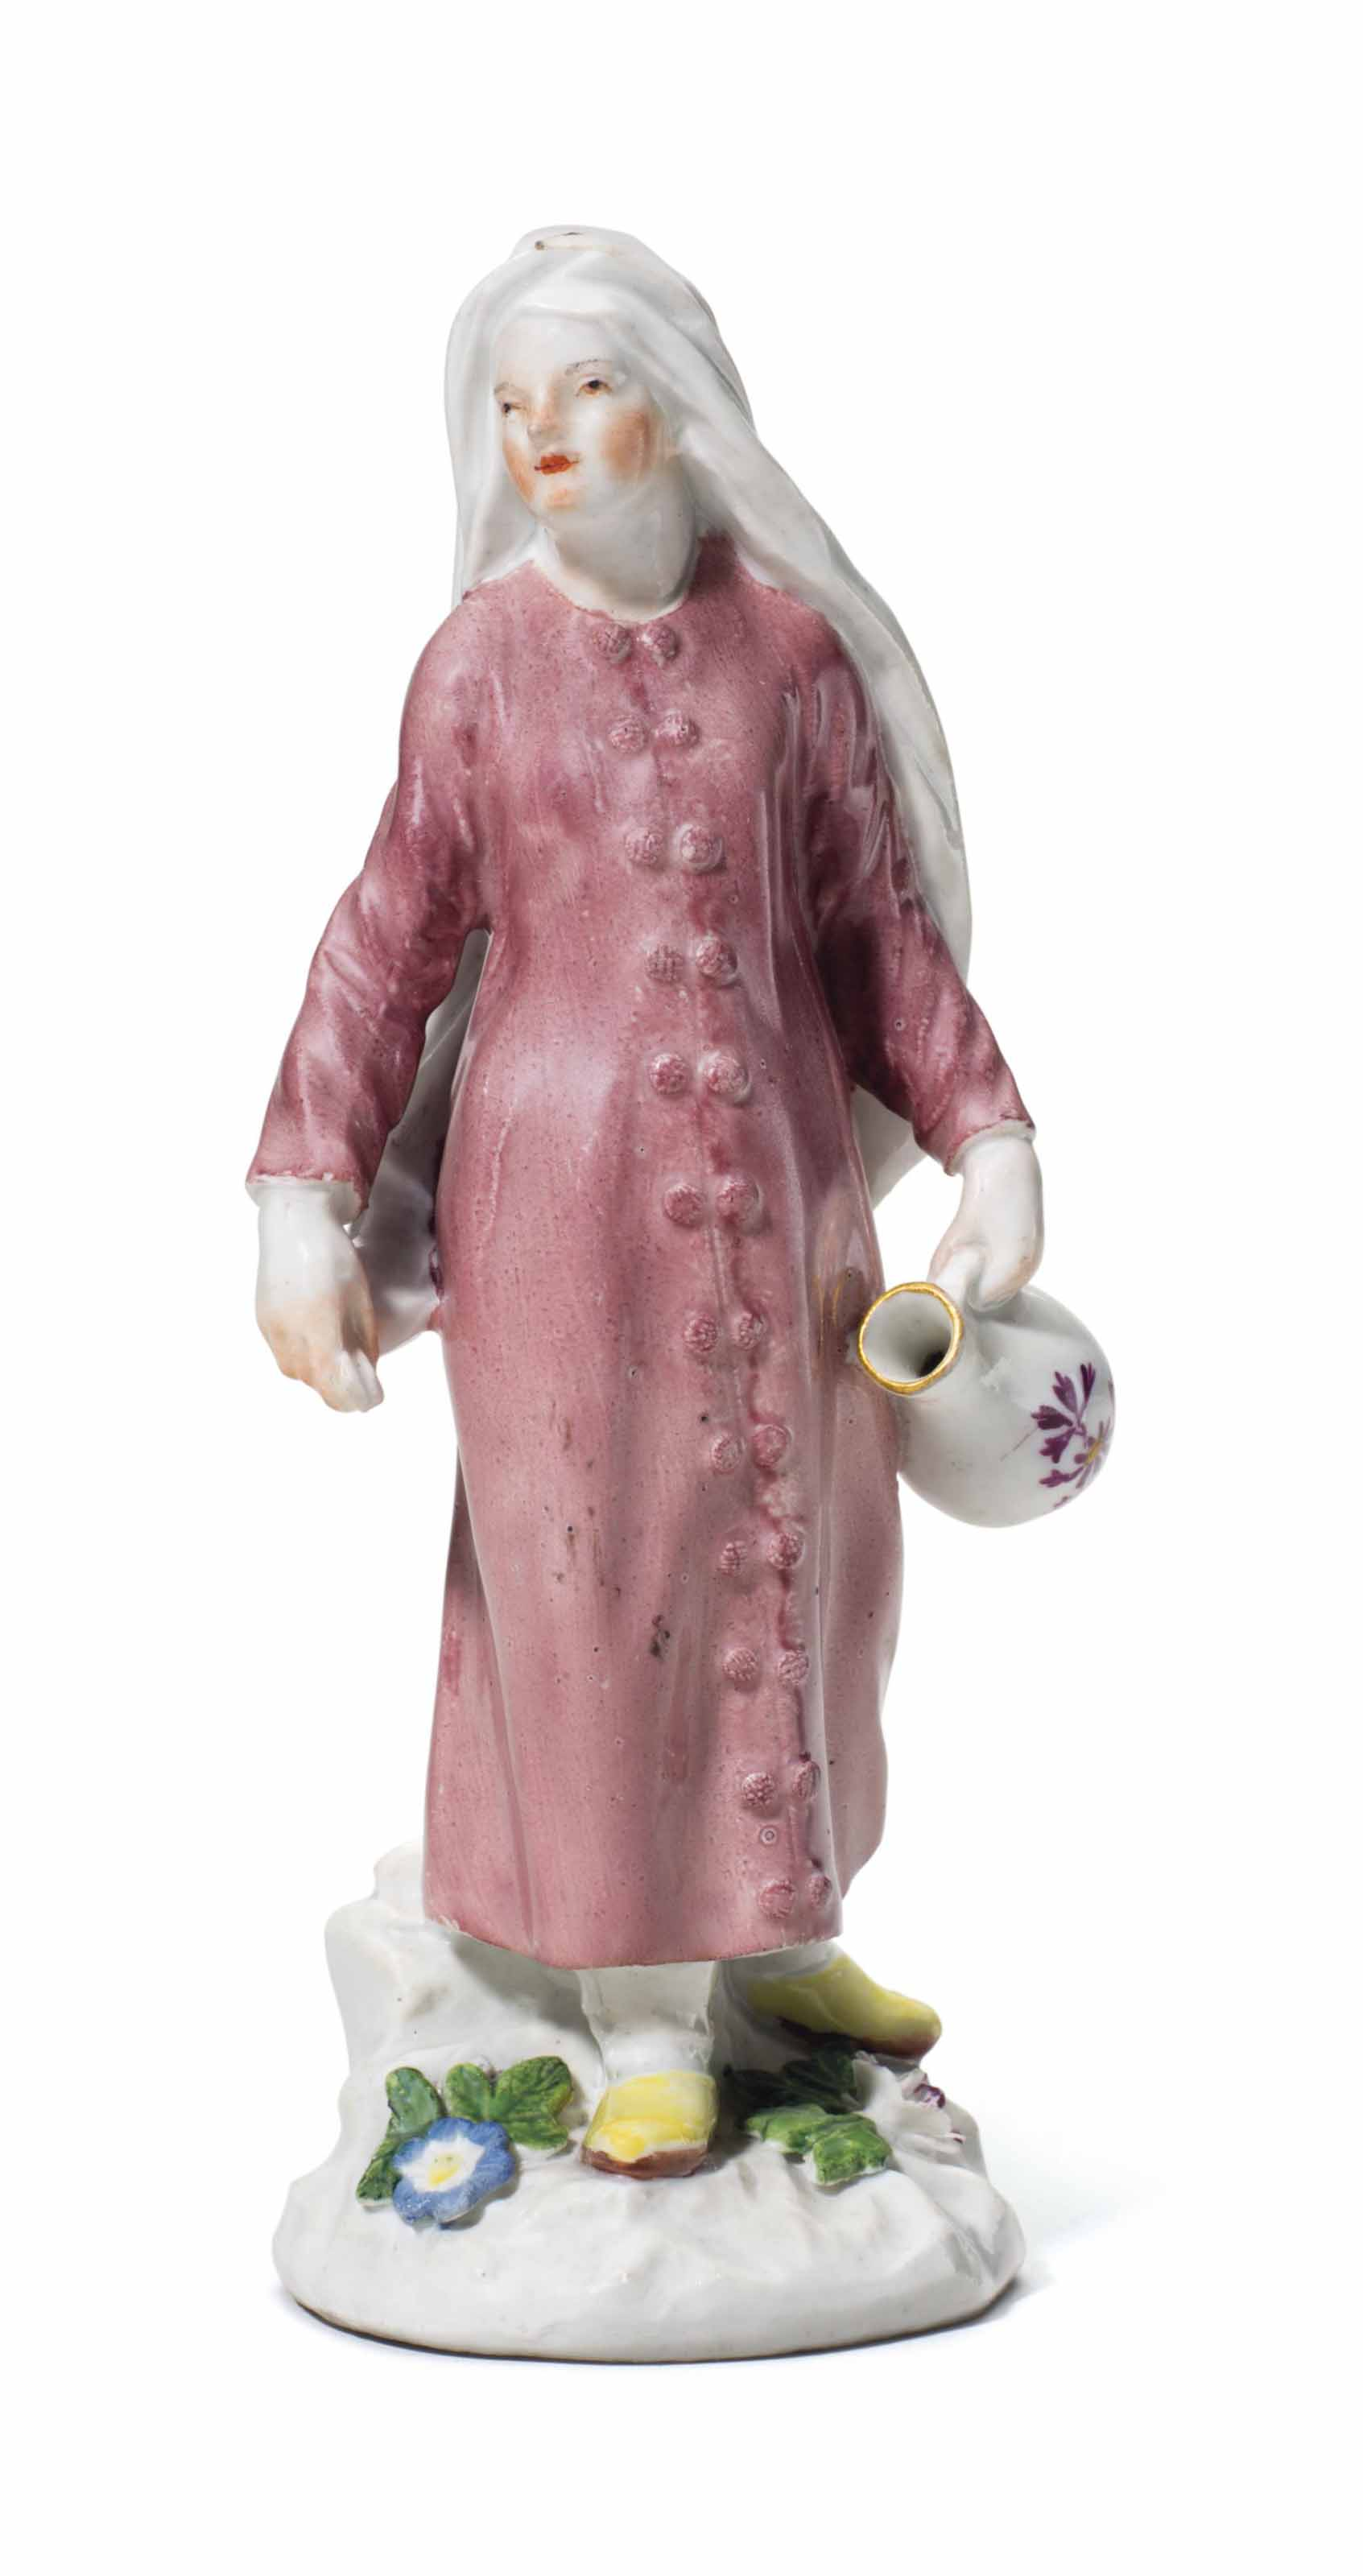 A MEISSEN PORCELAIN FIGURE OF